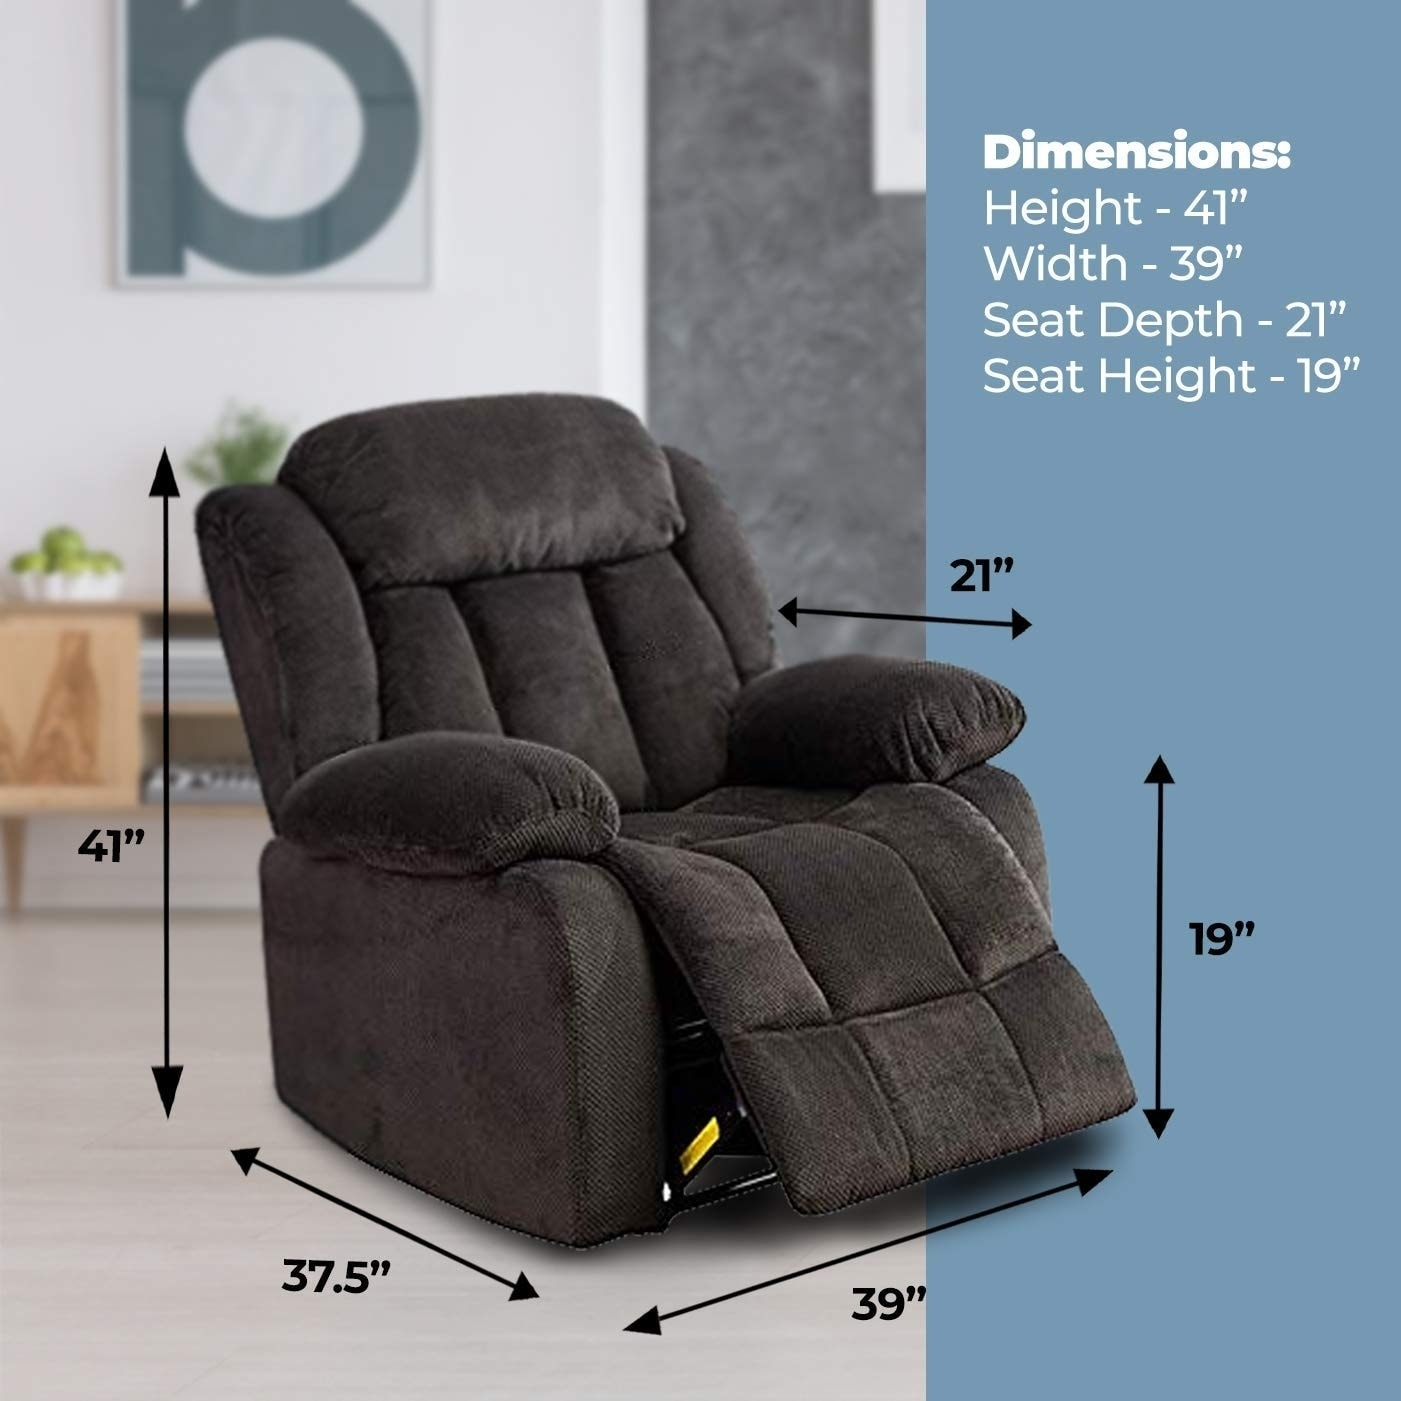 Shop oversized recliner chair microfiber cover living room lounge chair dark blue free shipping today overstock com 25724808